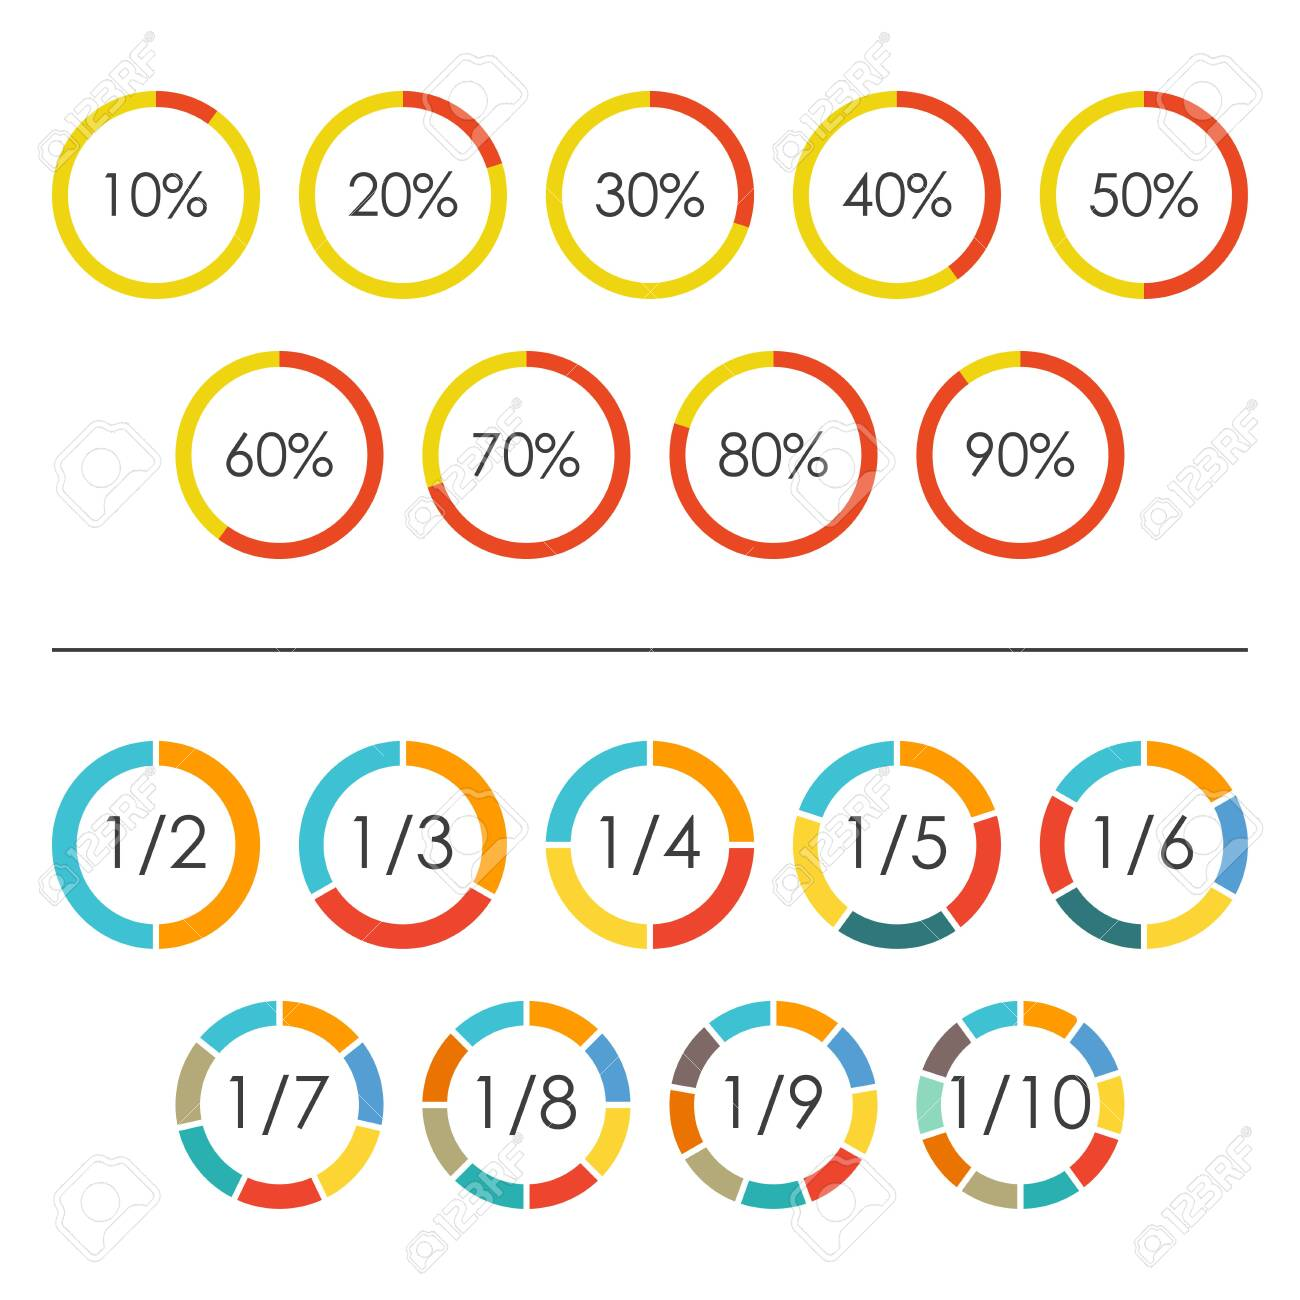 Collection Pie Chart With 3 Sections Pictures